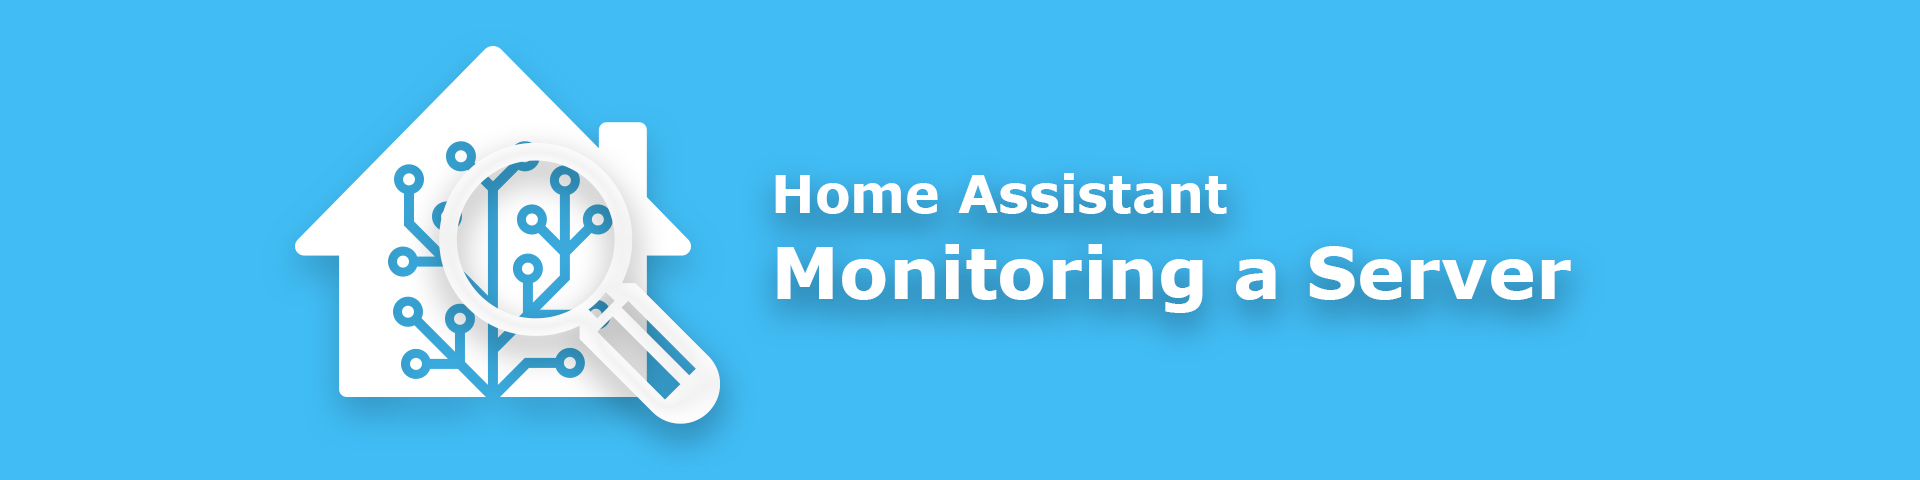 Monitoring a Home Assistant server